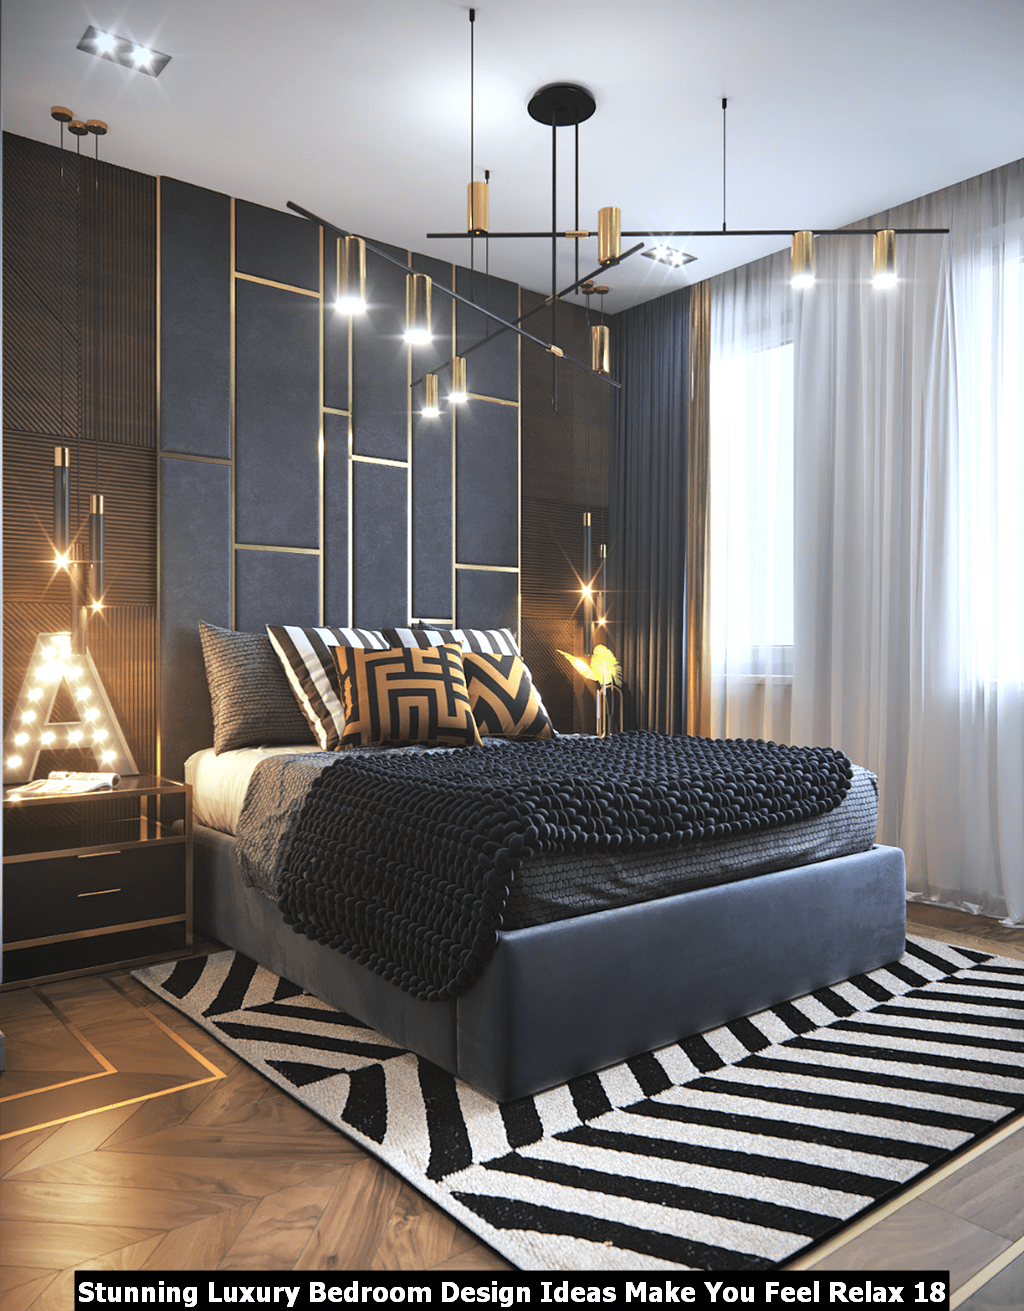 Stunning Luxury Bedroom Design Ideas Make You Feel Relax 18